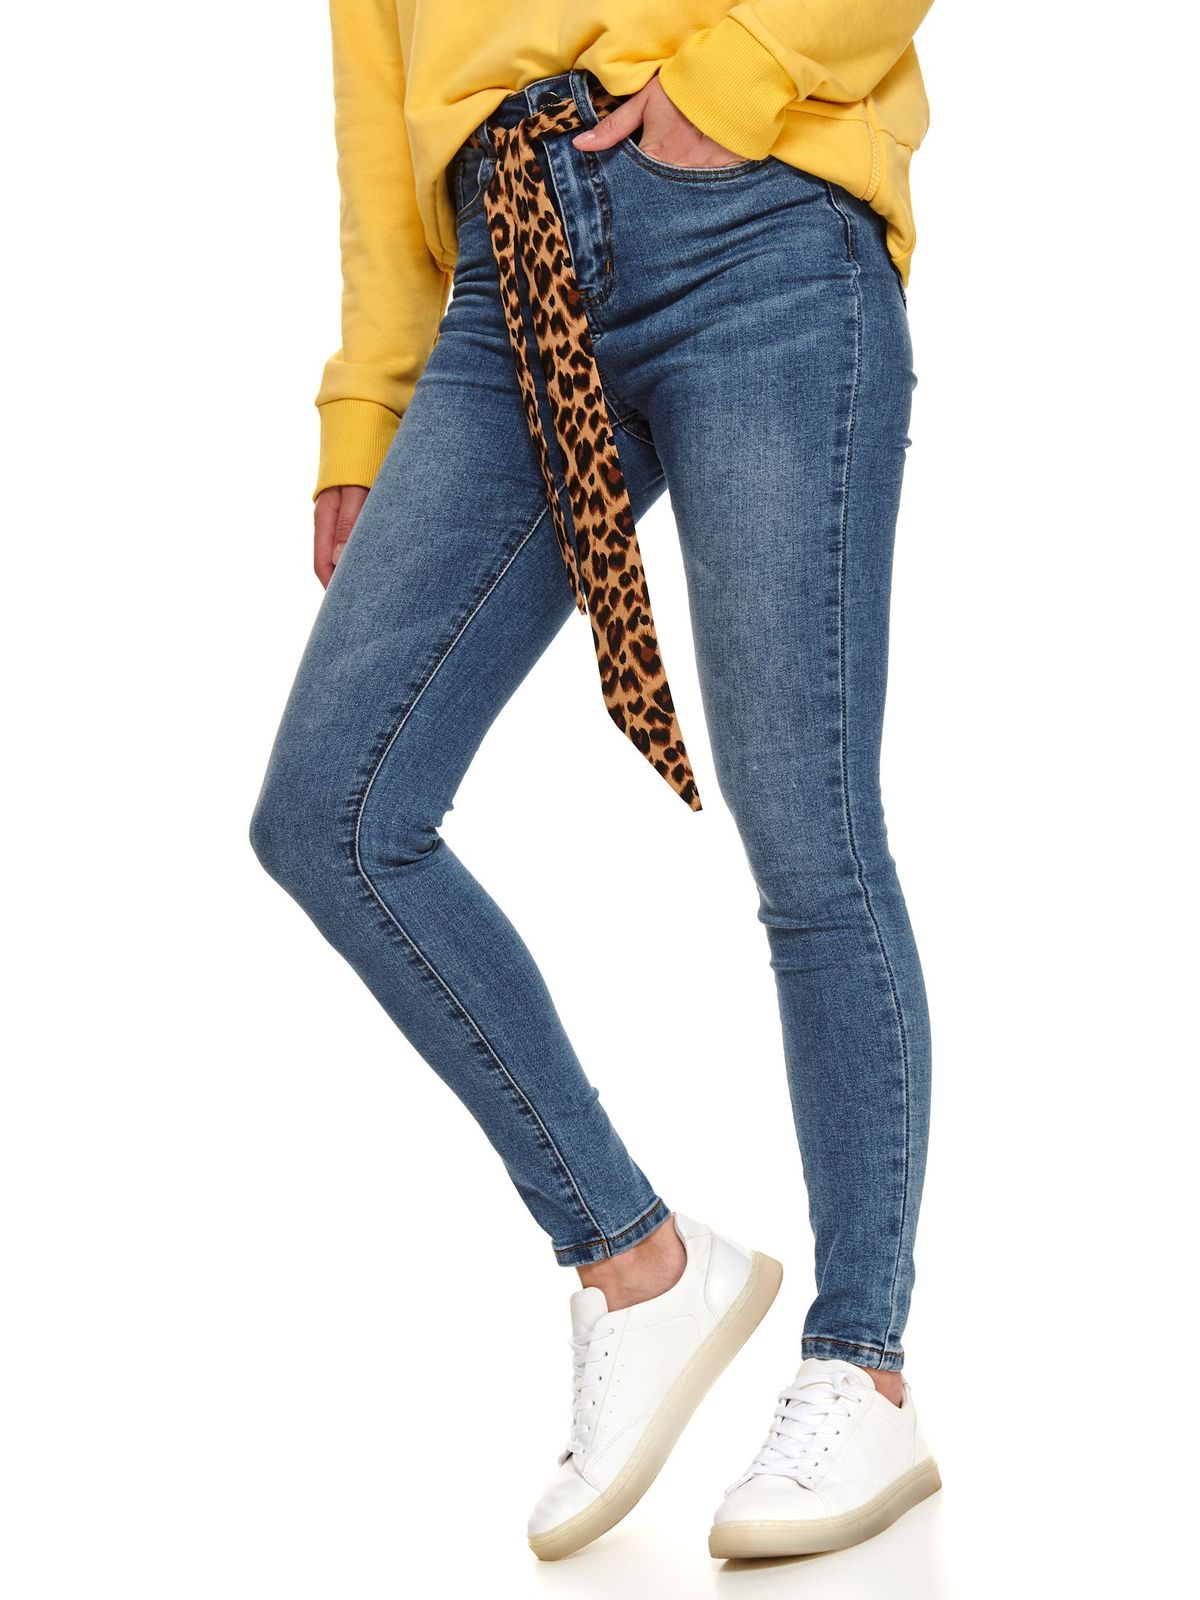 Blue jeans casual skinny jeans with medium waist